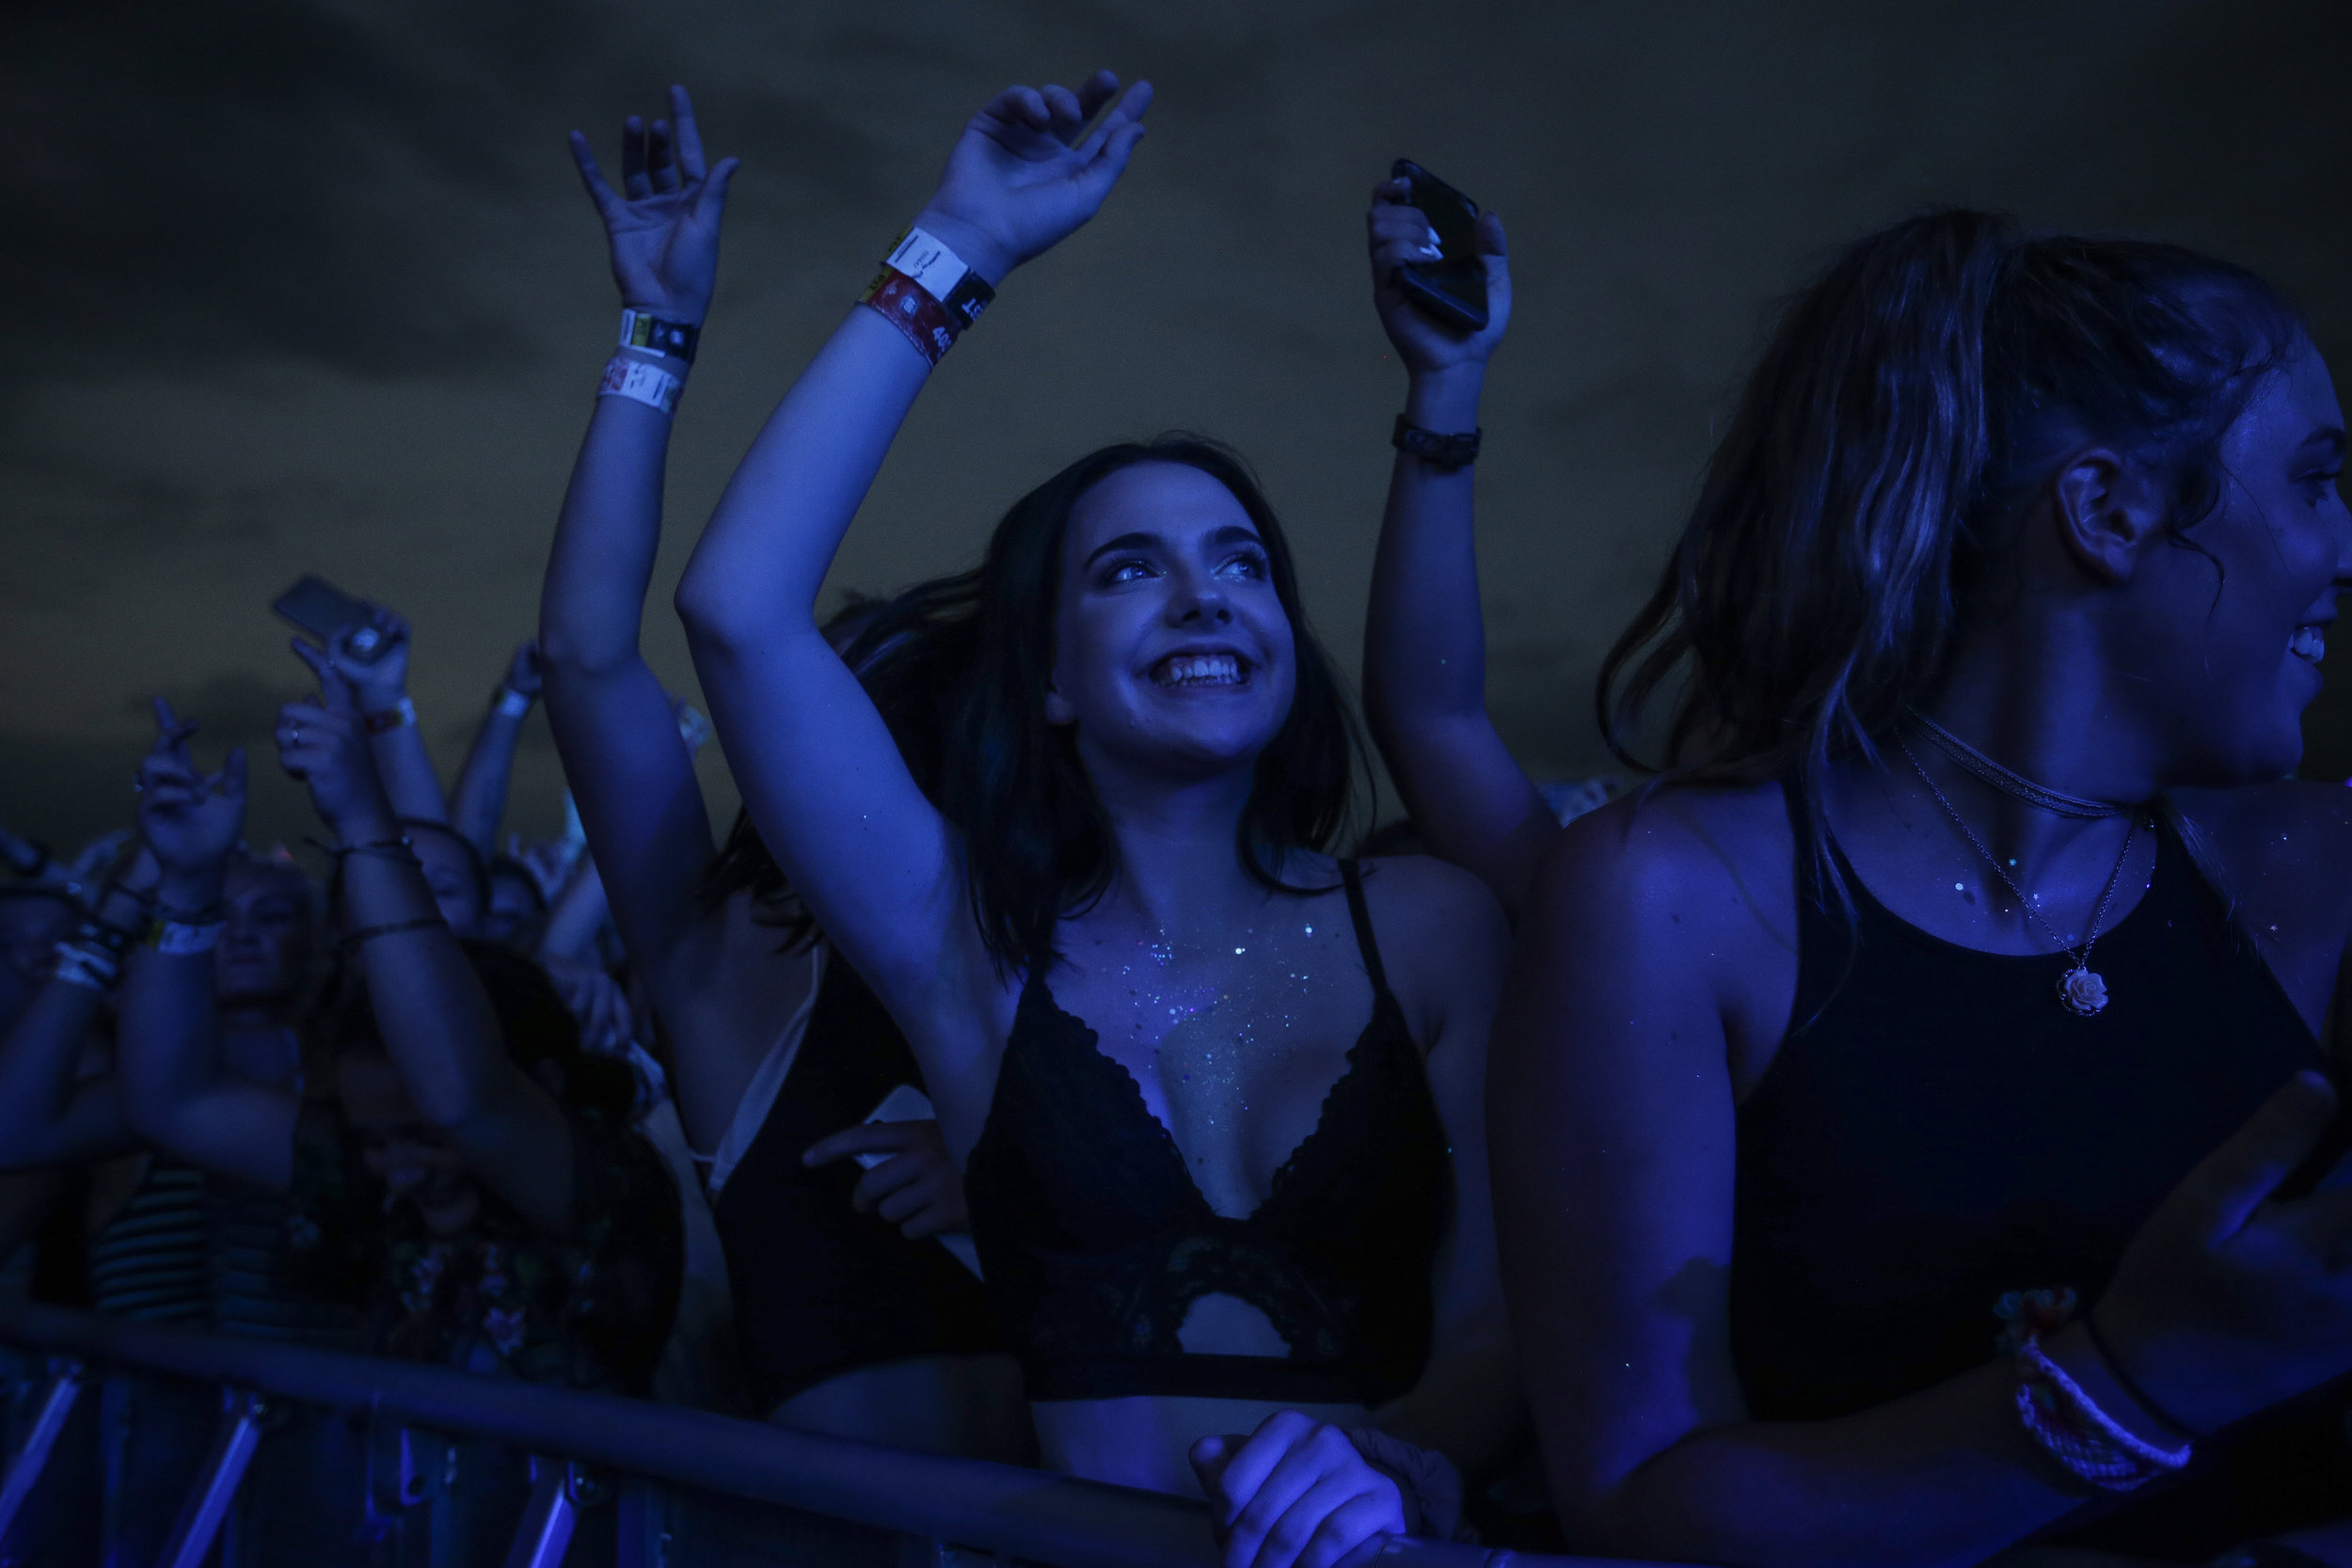 Olivia Smith cheers for The Chainsmokers' performance at the 400Fest concert at Indianapolis Motor Speedway on Saturday, July 22, 2017.